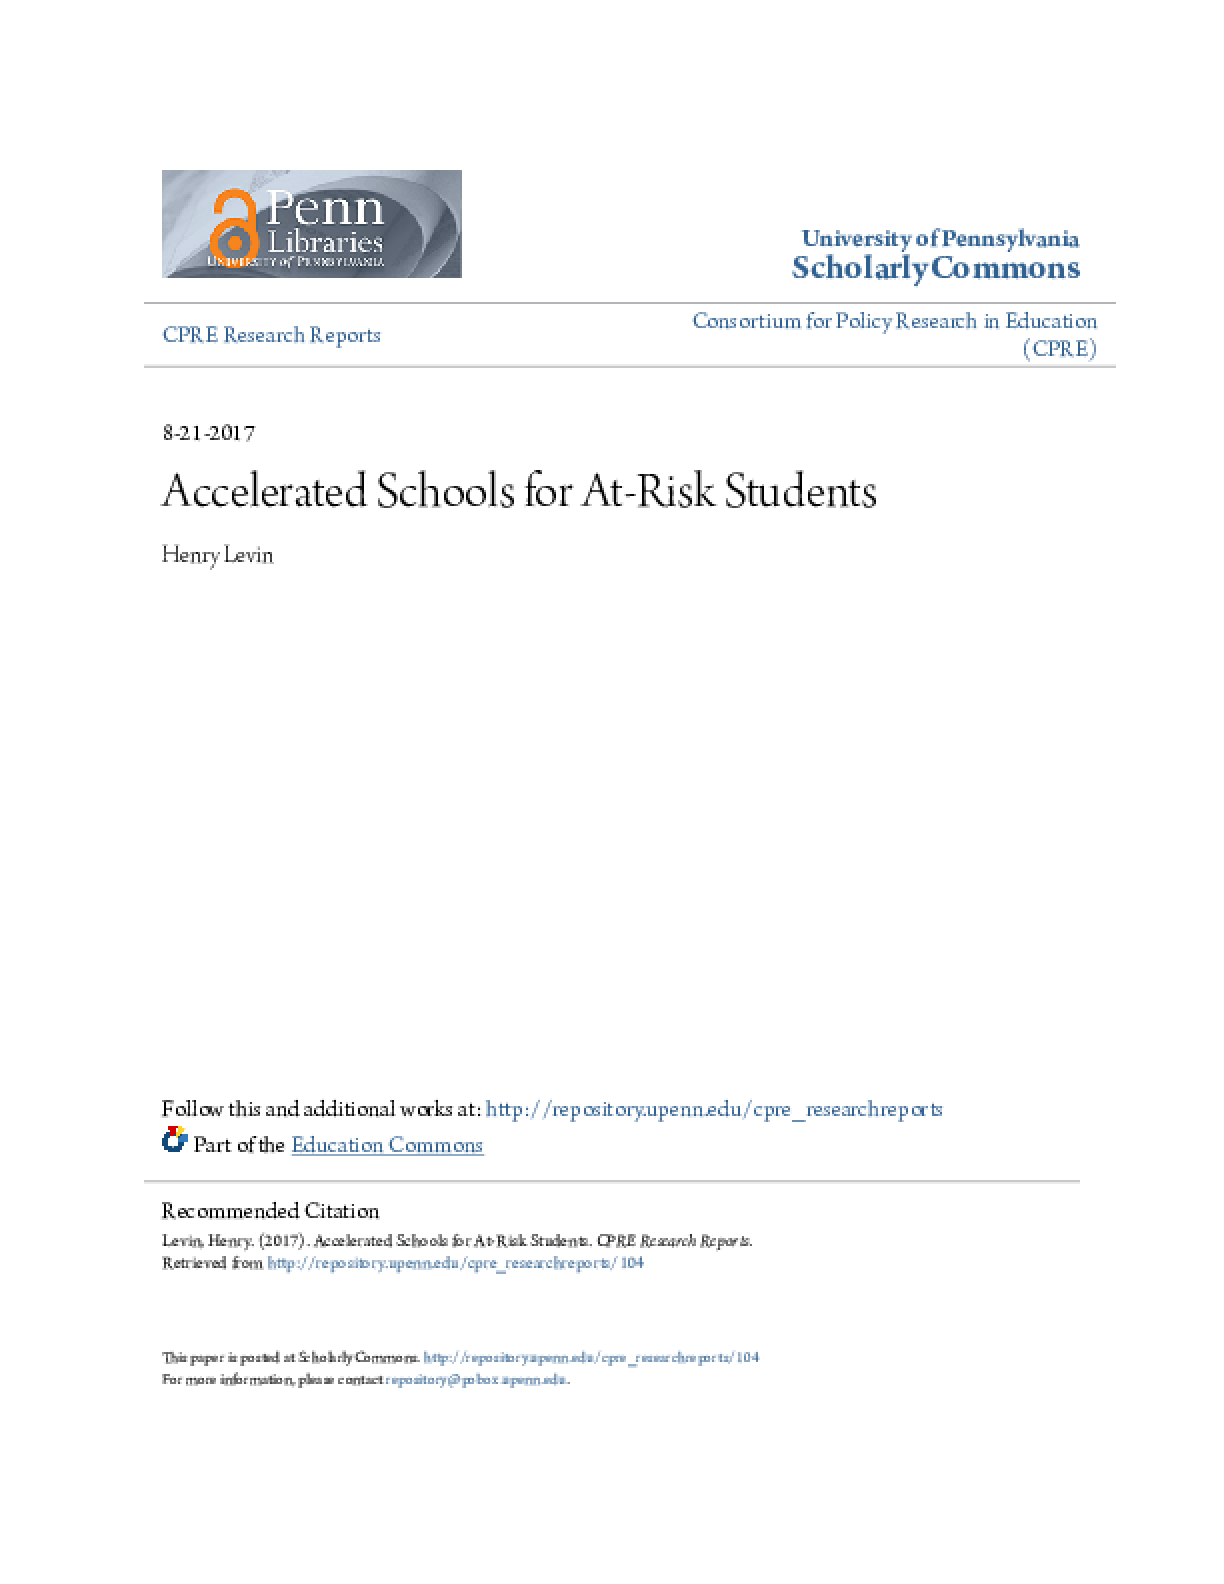 Accelerated Schools for At-Risk Students